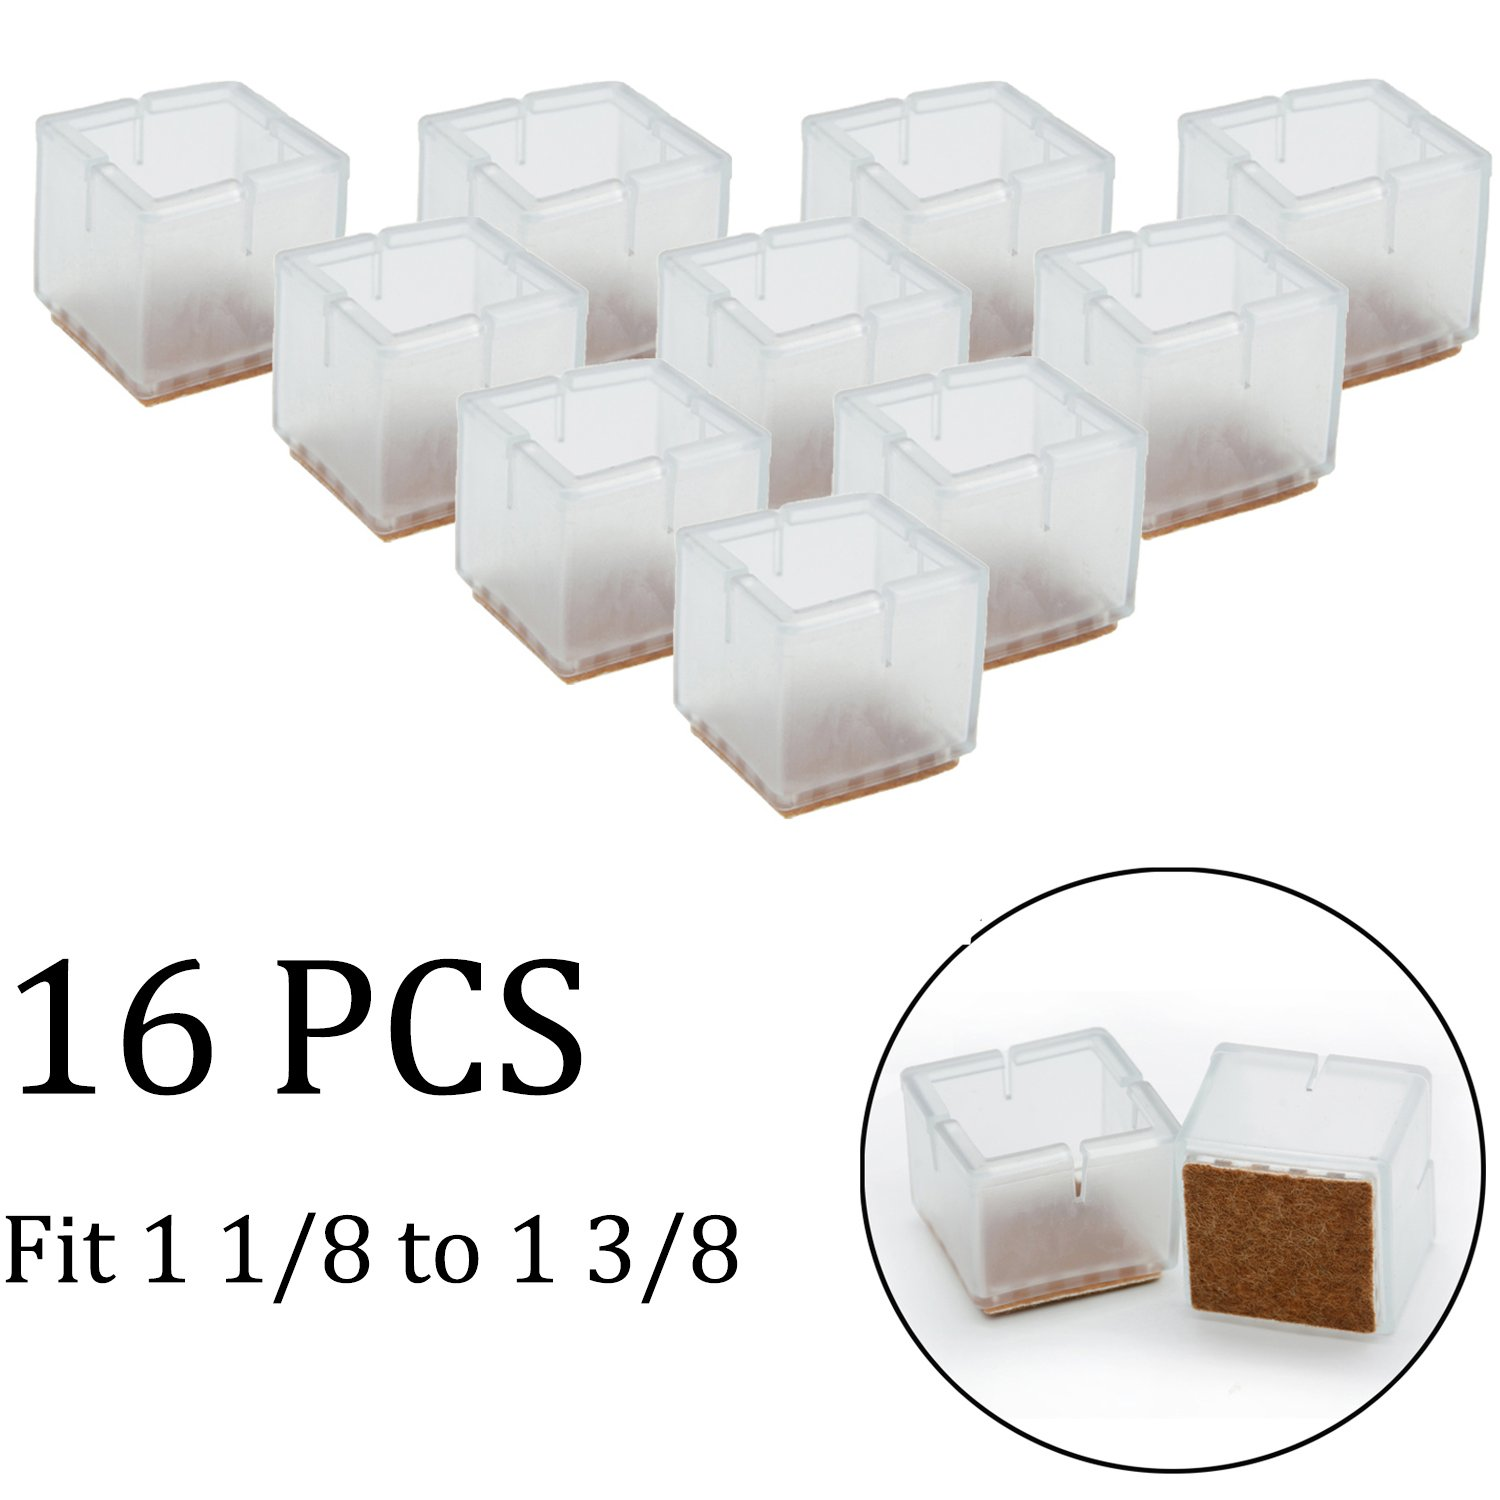 b116e085579 Get Quotations · KEIVA 16 Pcs Chair Leg Caps Silicone Floor Protector  Square Furniture Table Feet Tips Covers